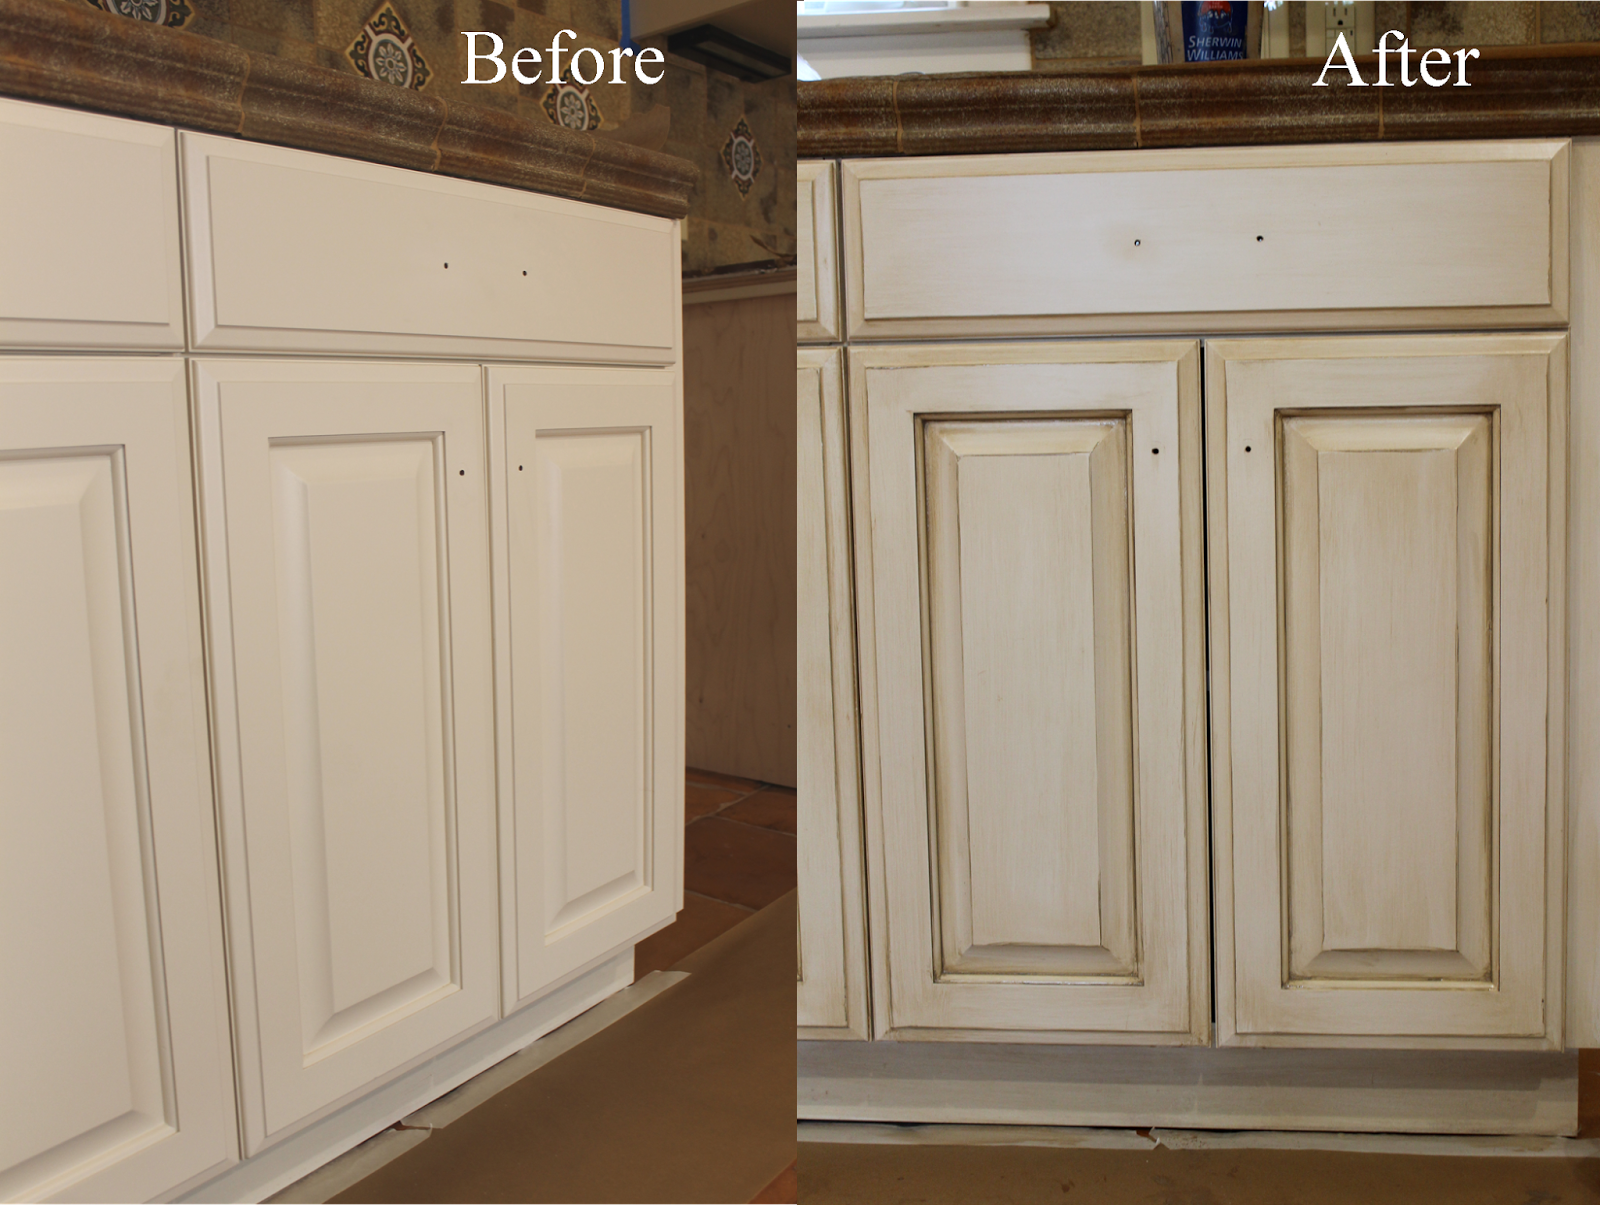 amazing Kitchen Cabinet Painting Techniques #8: Kitchen ideas u0026middot; Before and after....Glazing/antiquing cabinets. A complete how to